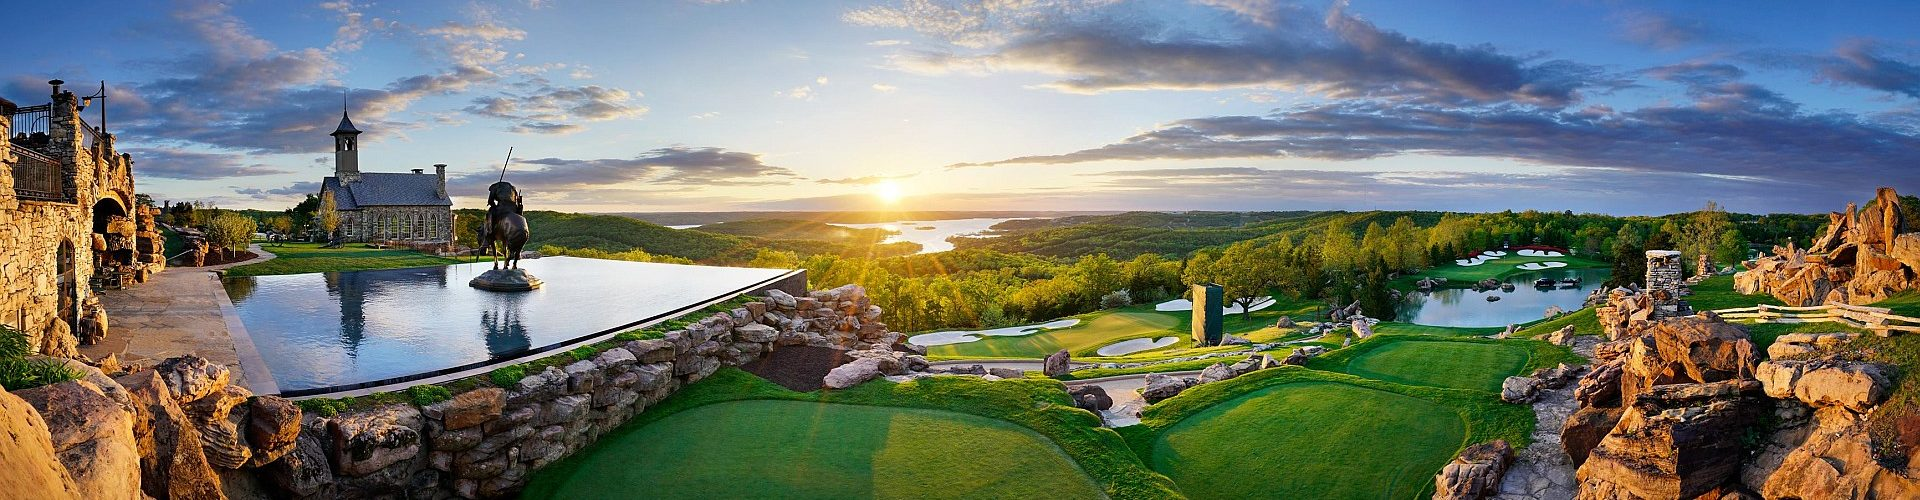 Top of the Rock in Branson, Missouri is one of the world's most incredible golf experiences.